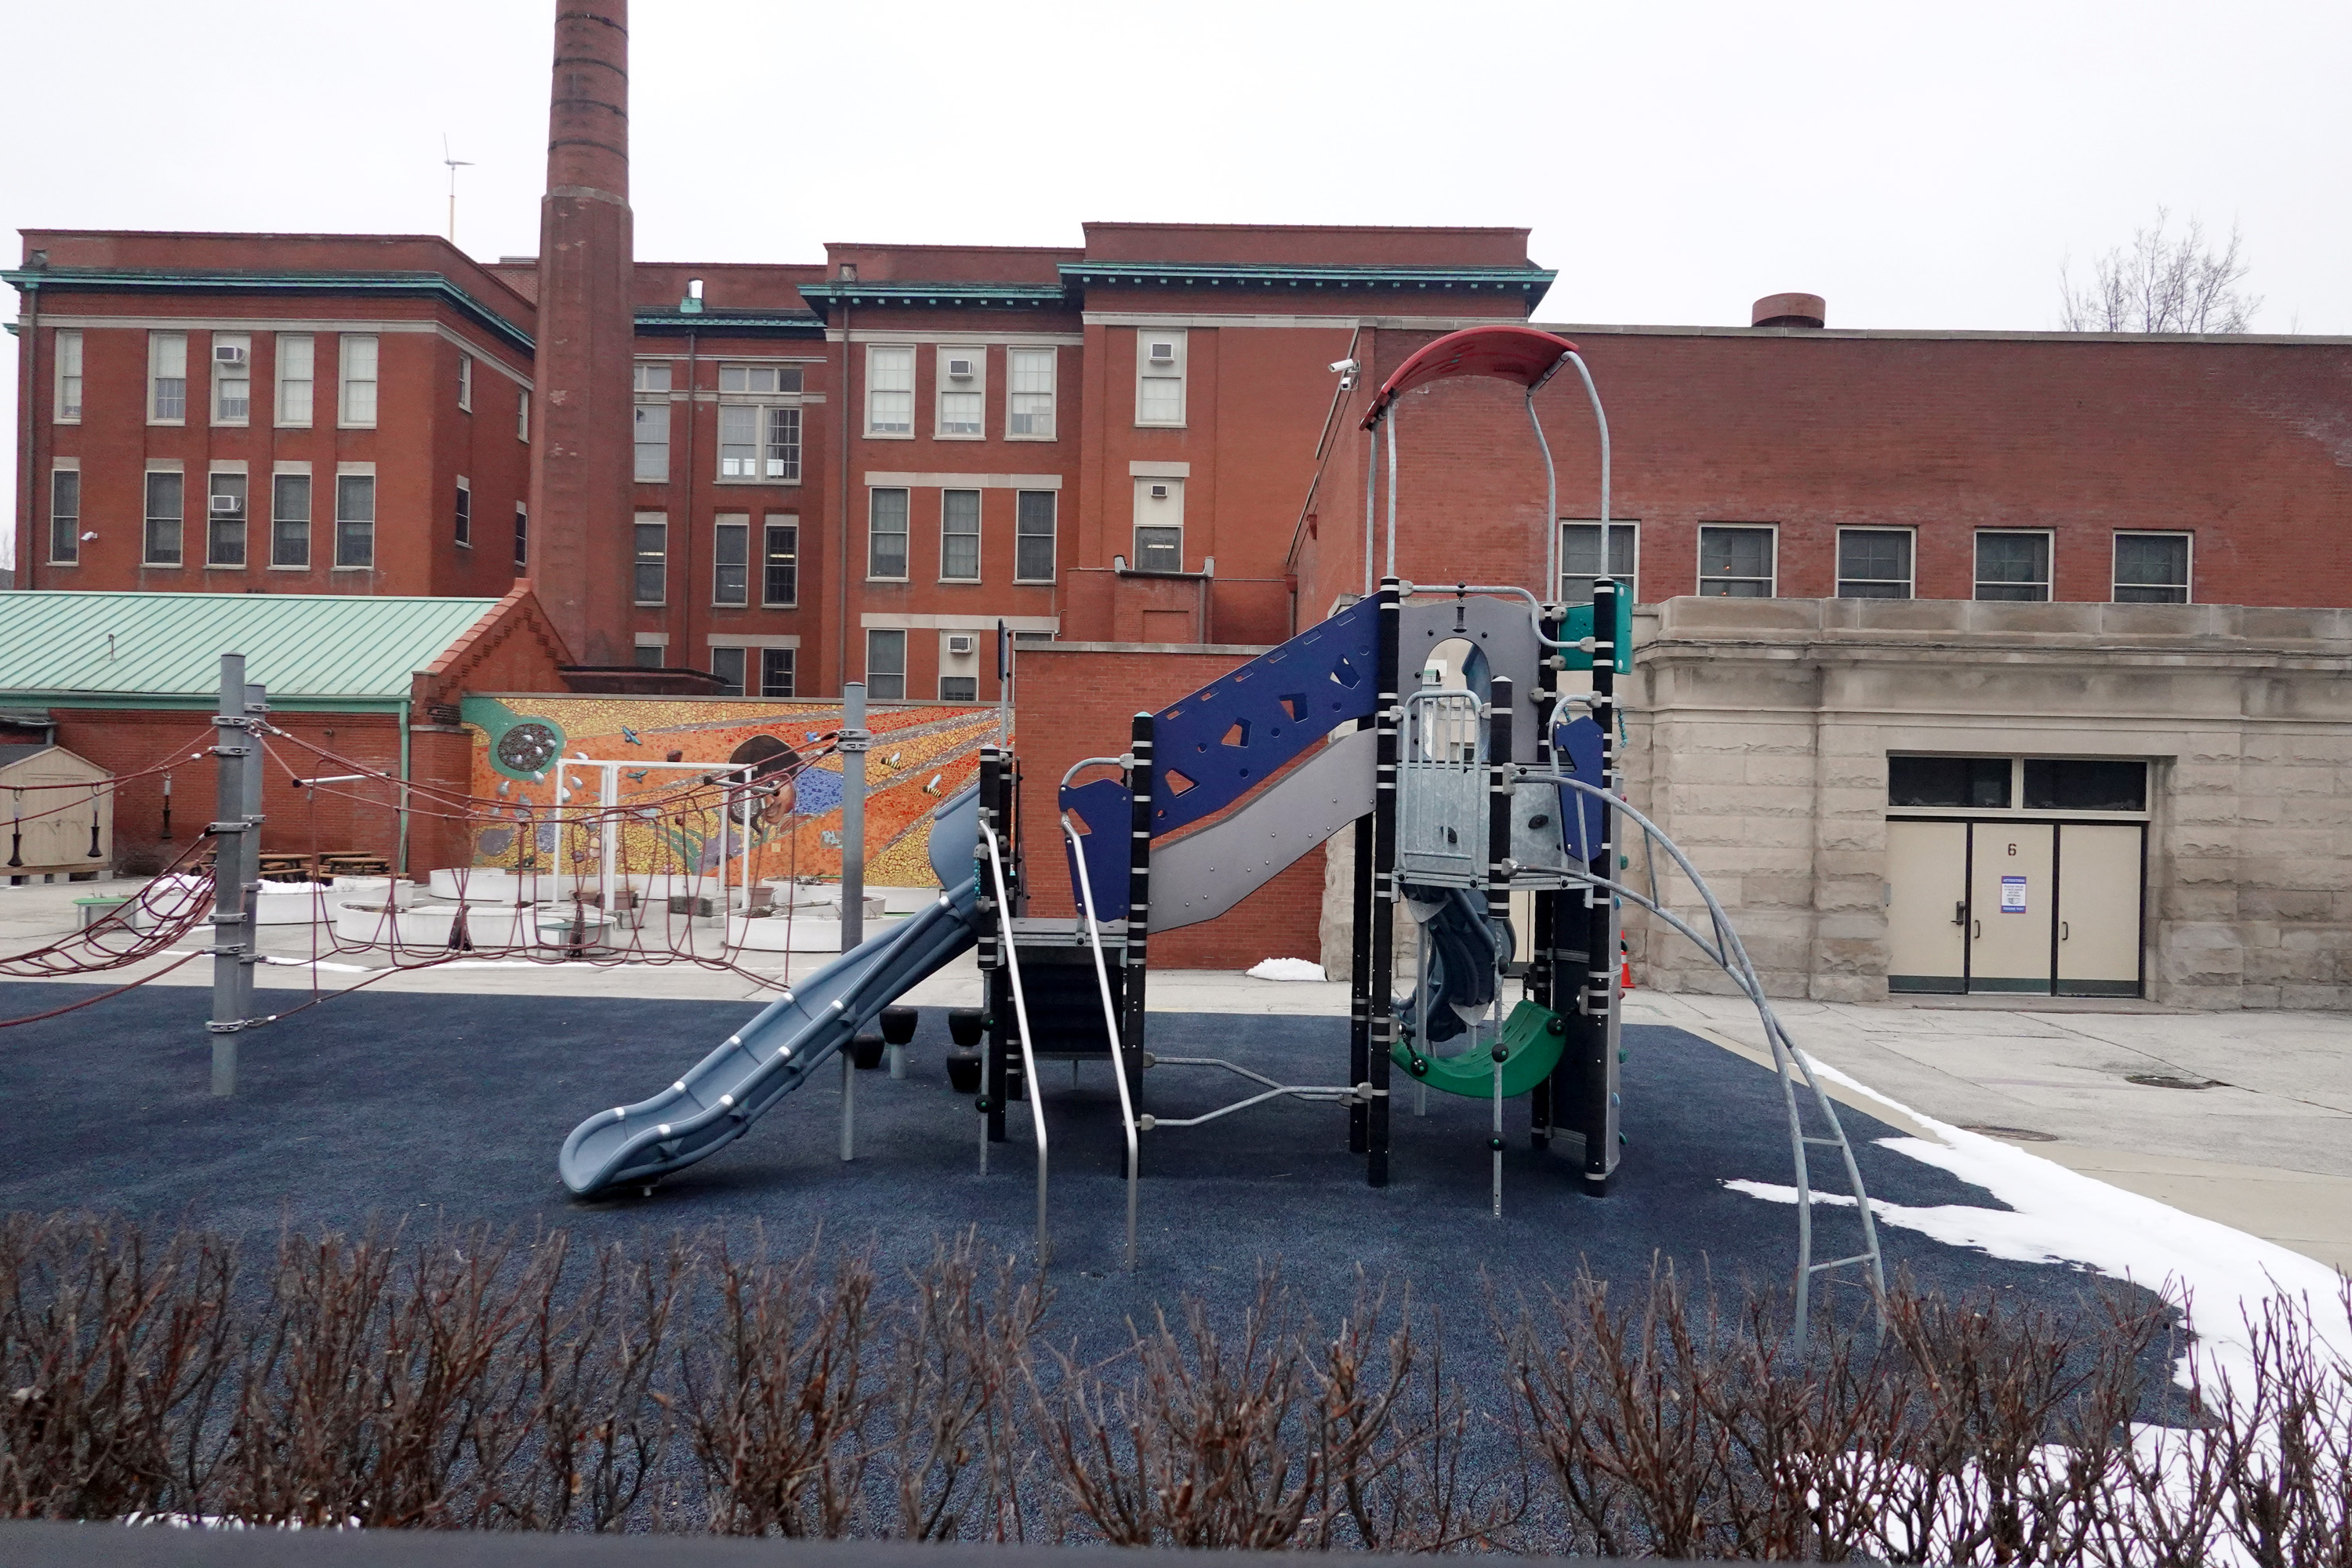 The playground was empty at Burr Elementary School in Chicago on Jan. 25, 2021, as the teachers' union and the city failed to reach agreement on the planned reopening of schools to in-person learning.